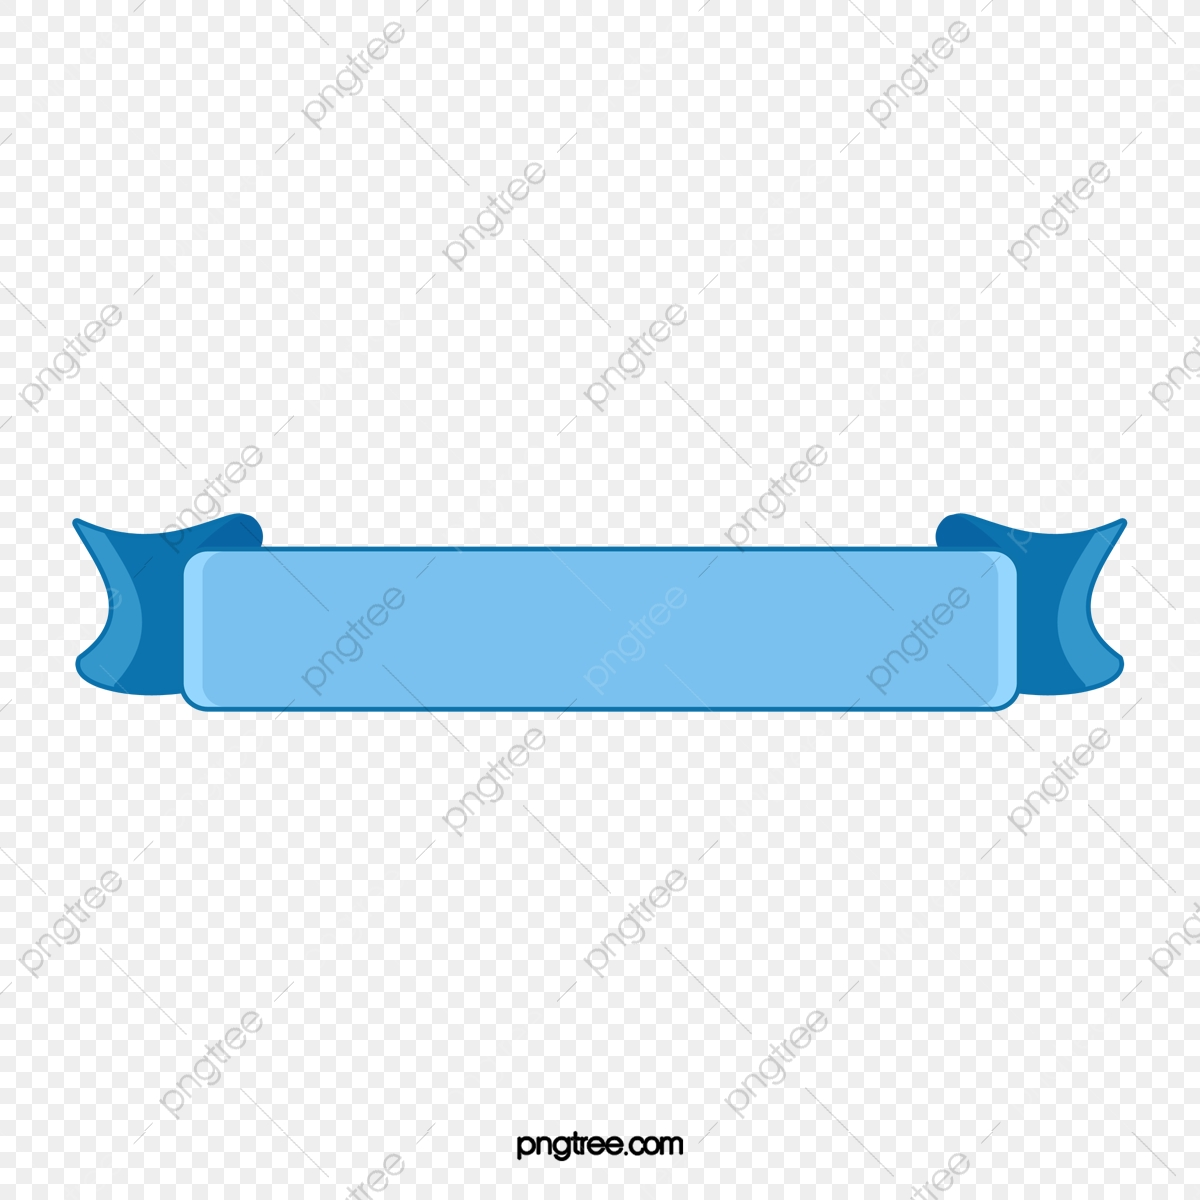 Blue Ribbon Border, Ribbon Clipart, Frame, Strip PNG Transparent.